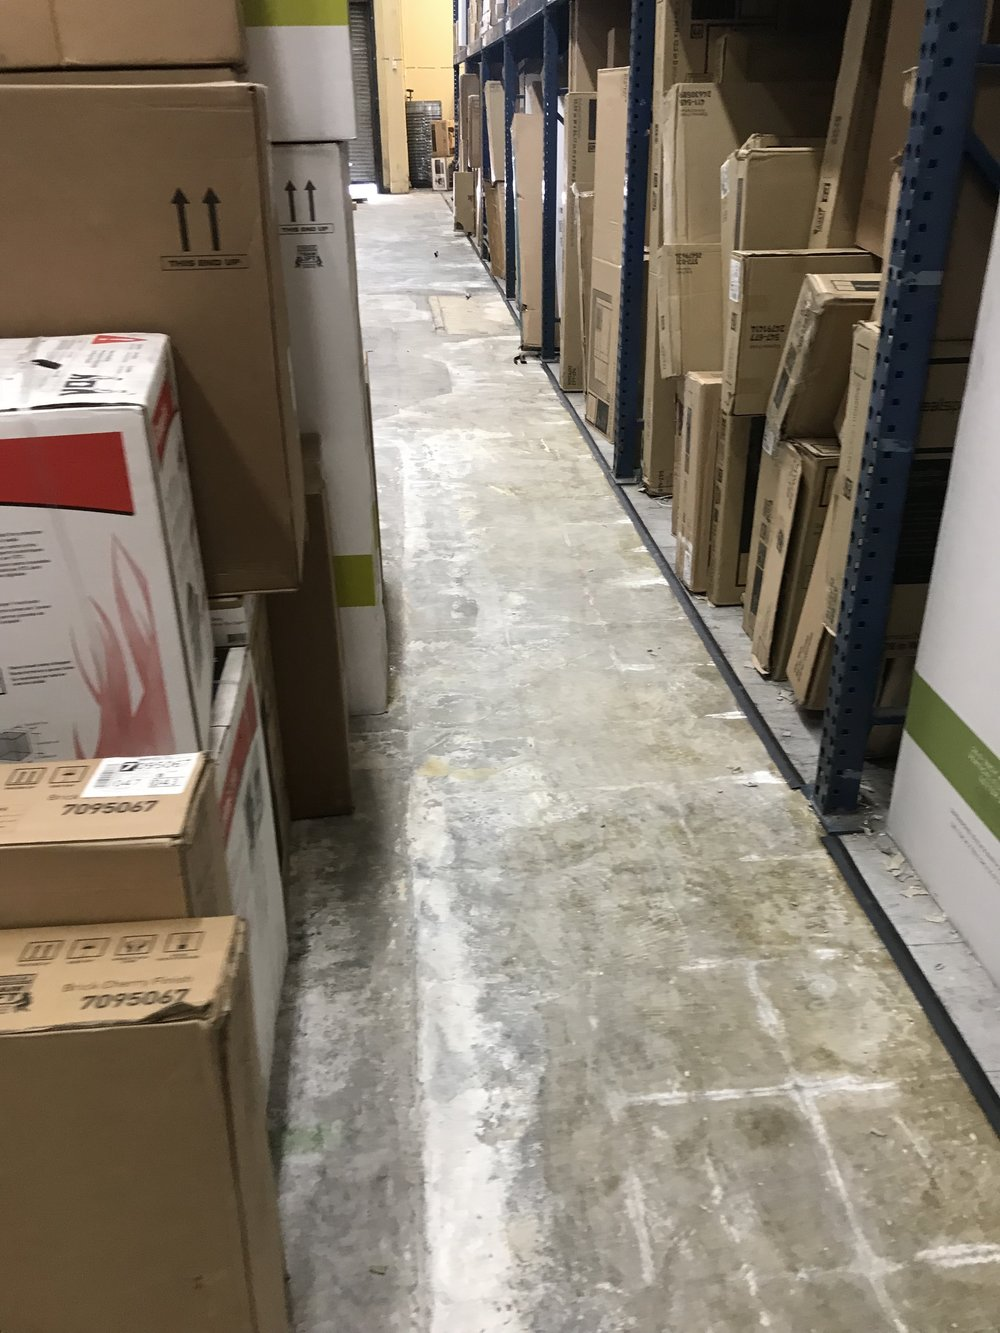 Warehouse flooring and demolition project. Complete remodel of the warehouse to ensure safety and OSHA compliance for employees and staff.